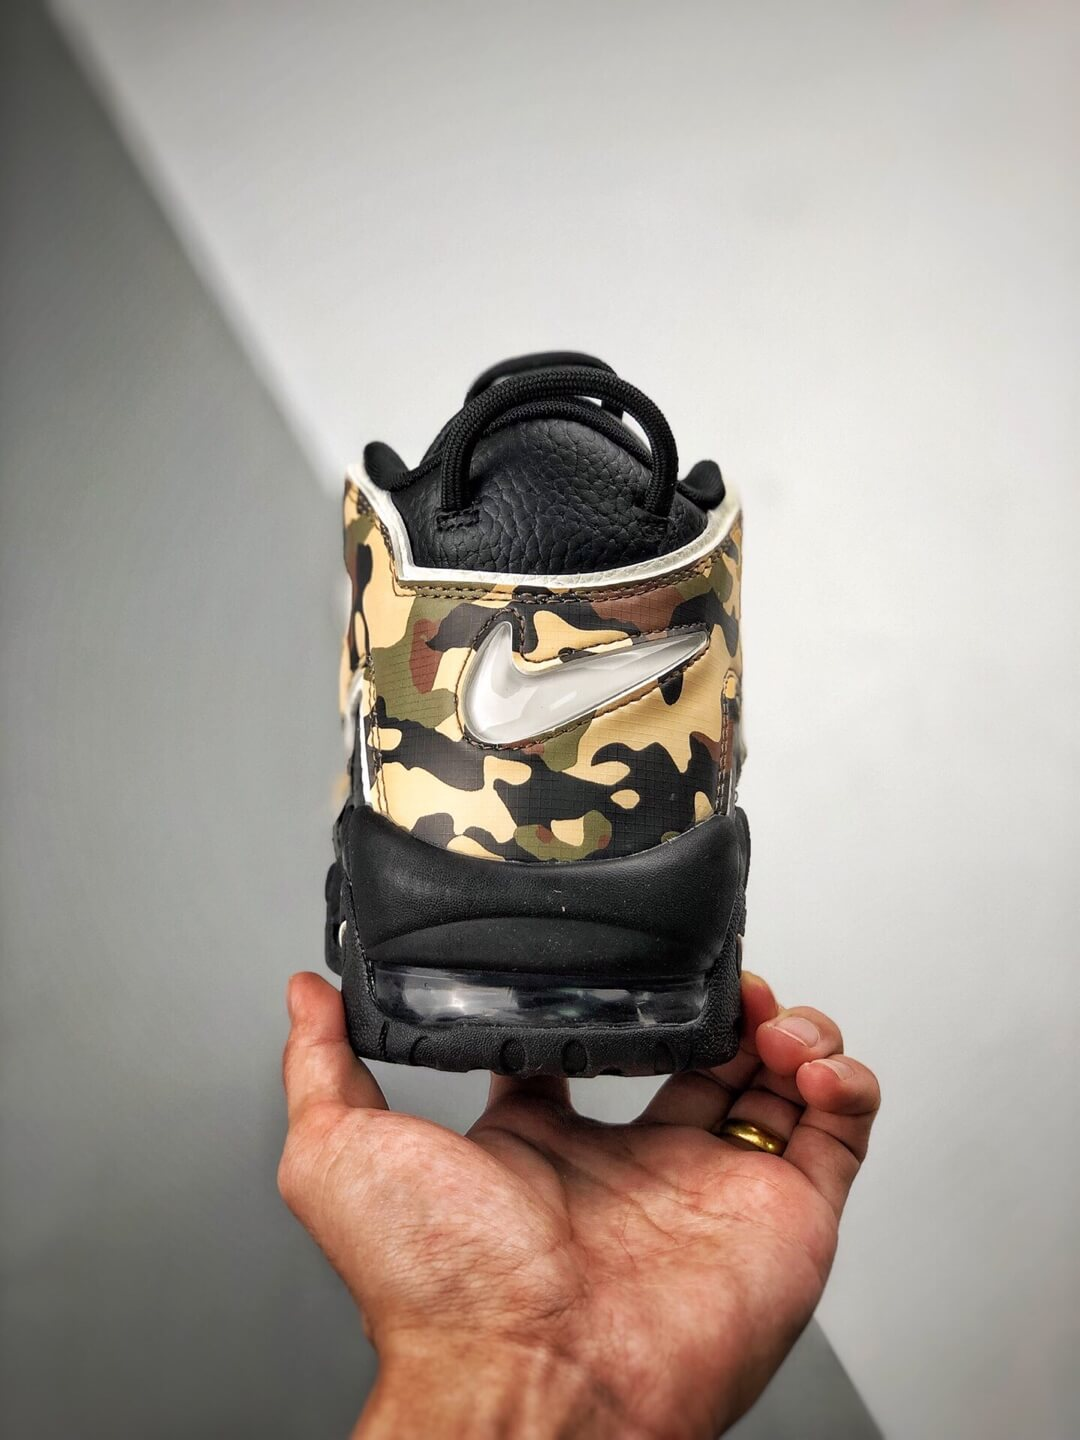 The Nike Air More Uptempo Camo Basketball Sneaker Premium Tumbled Leather Upper Top Replica Sports Shoes 07